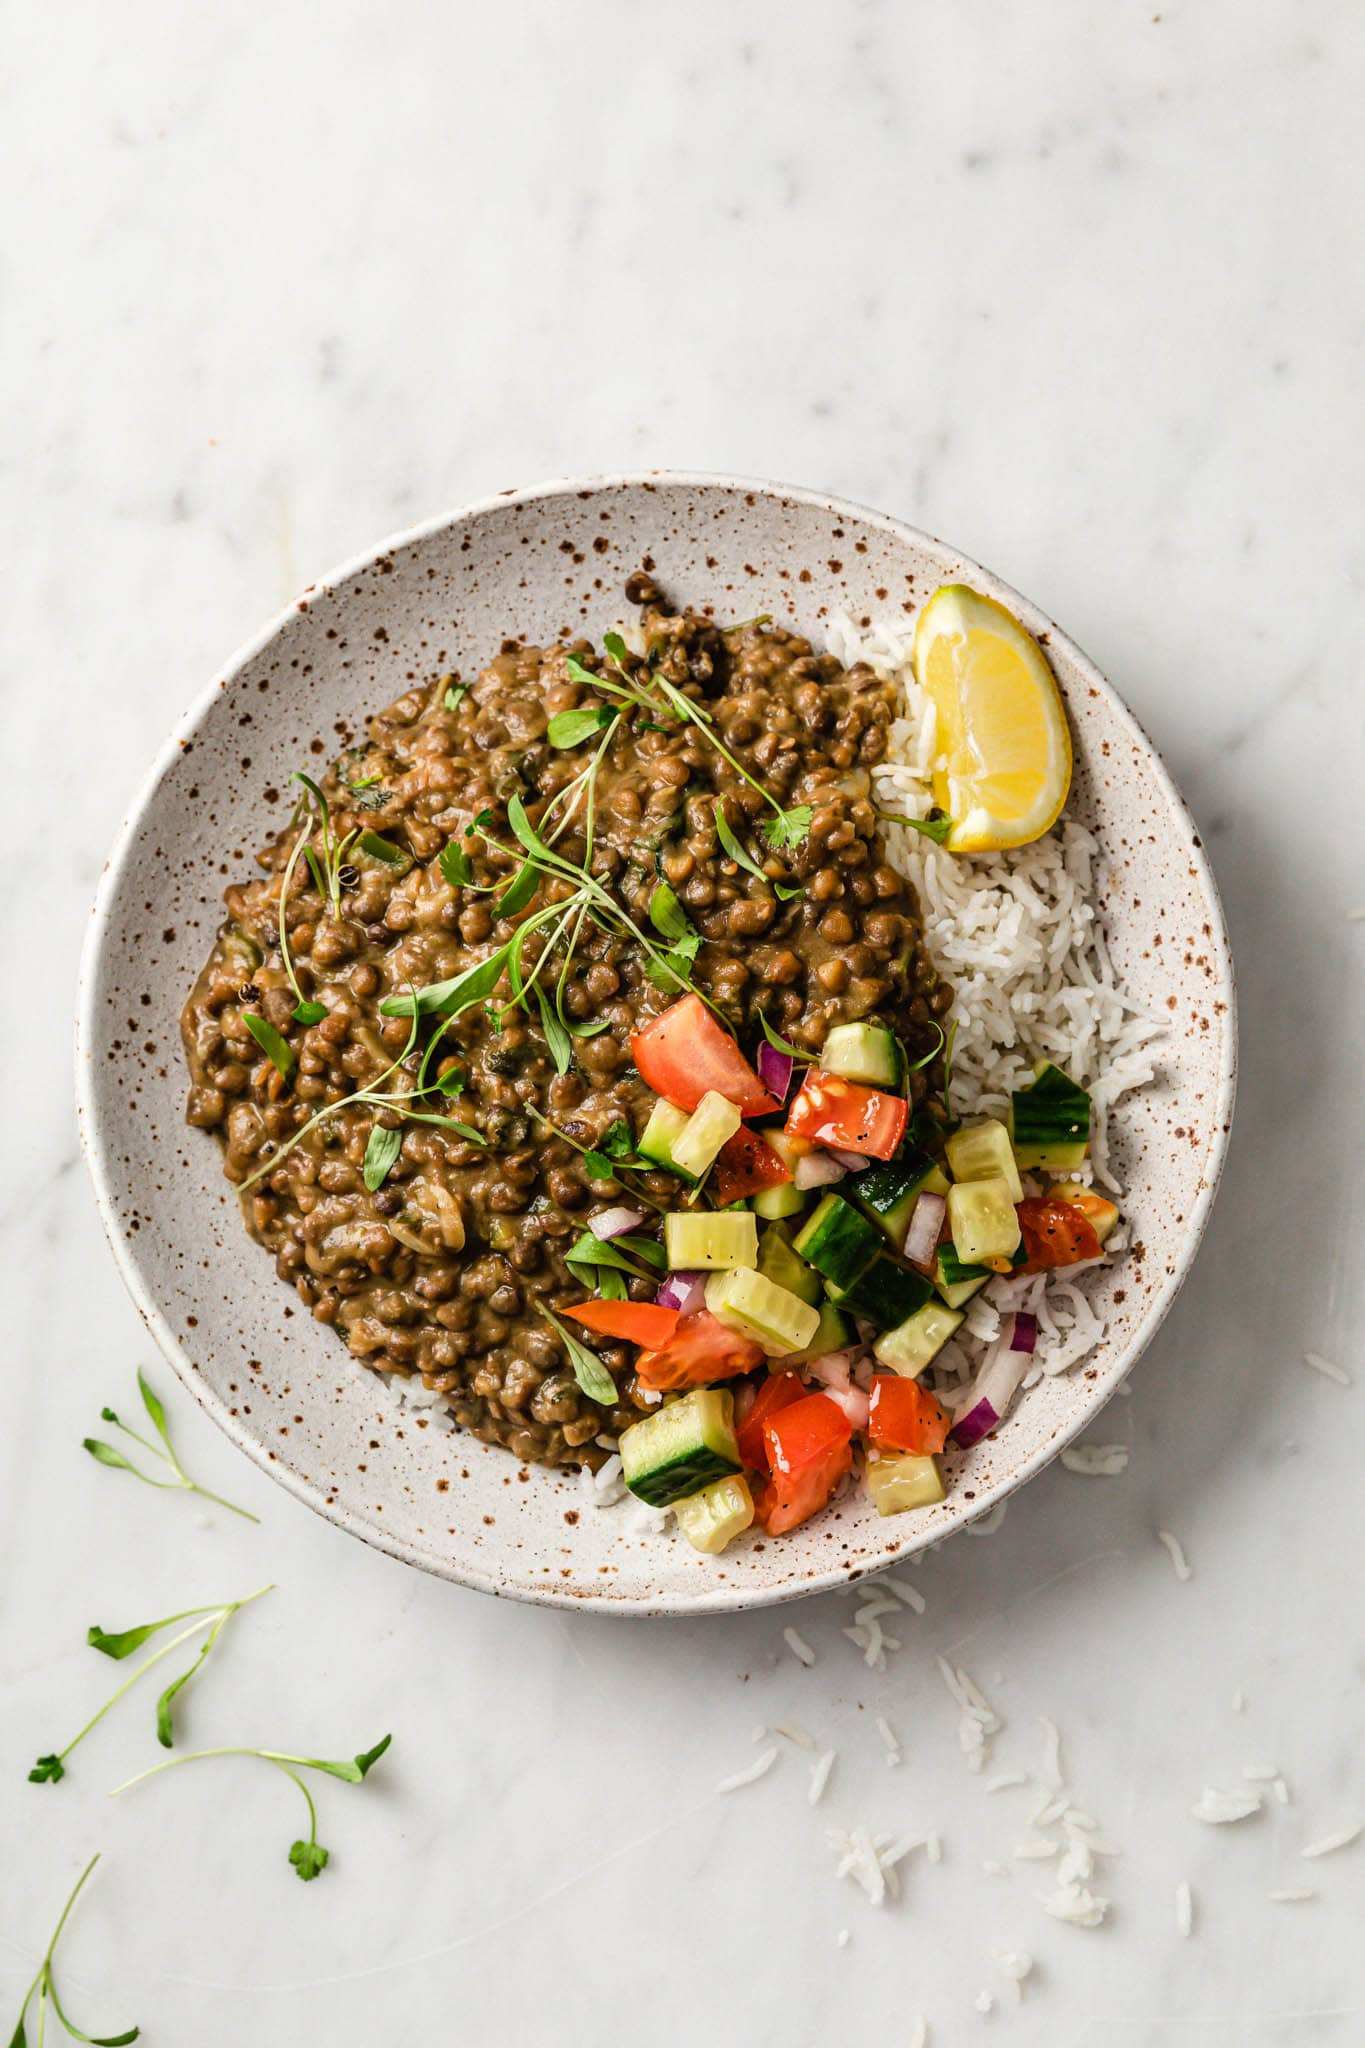 Instant Pot Whole Masoor Dal (Brown Lentil Curry) in a speckled plate garnished with cilantro with crunchy vegetables and a lemon wedge on the side